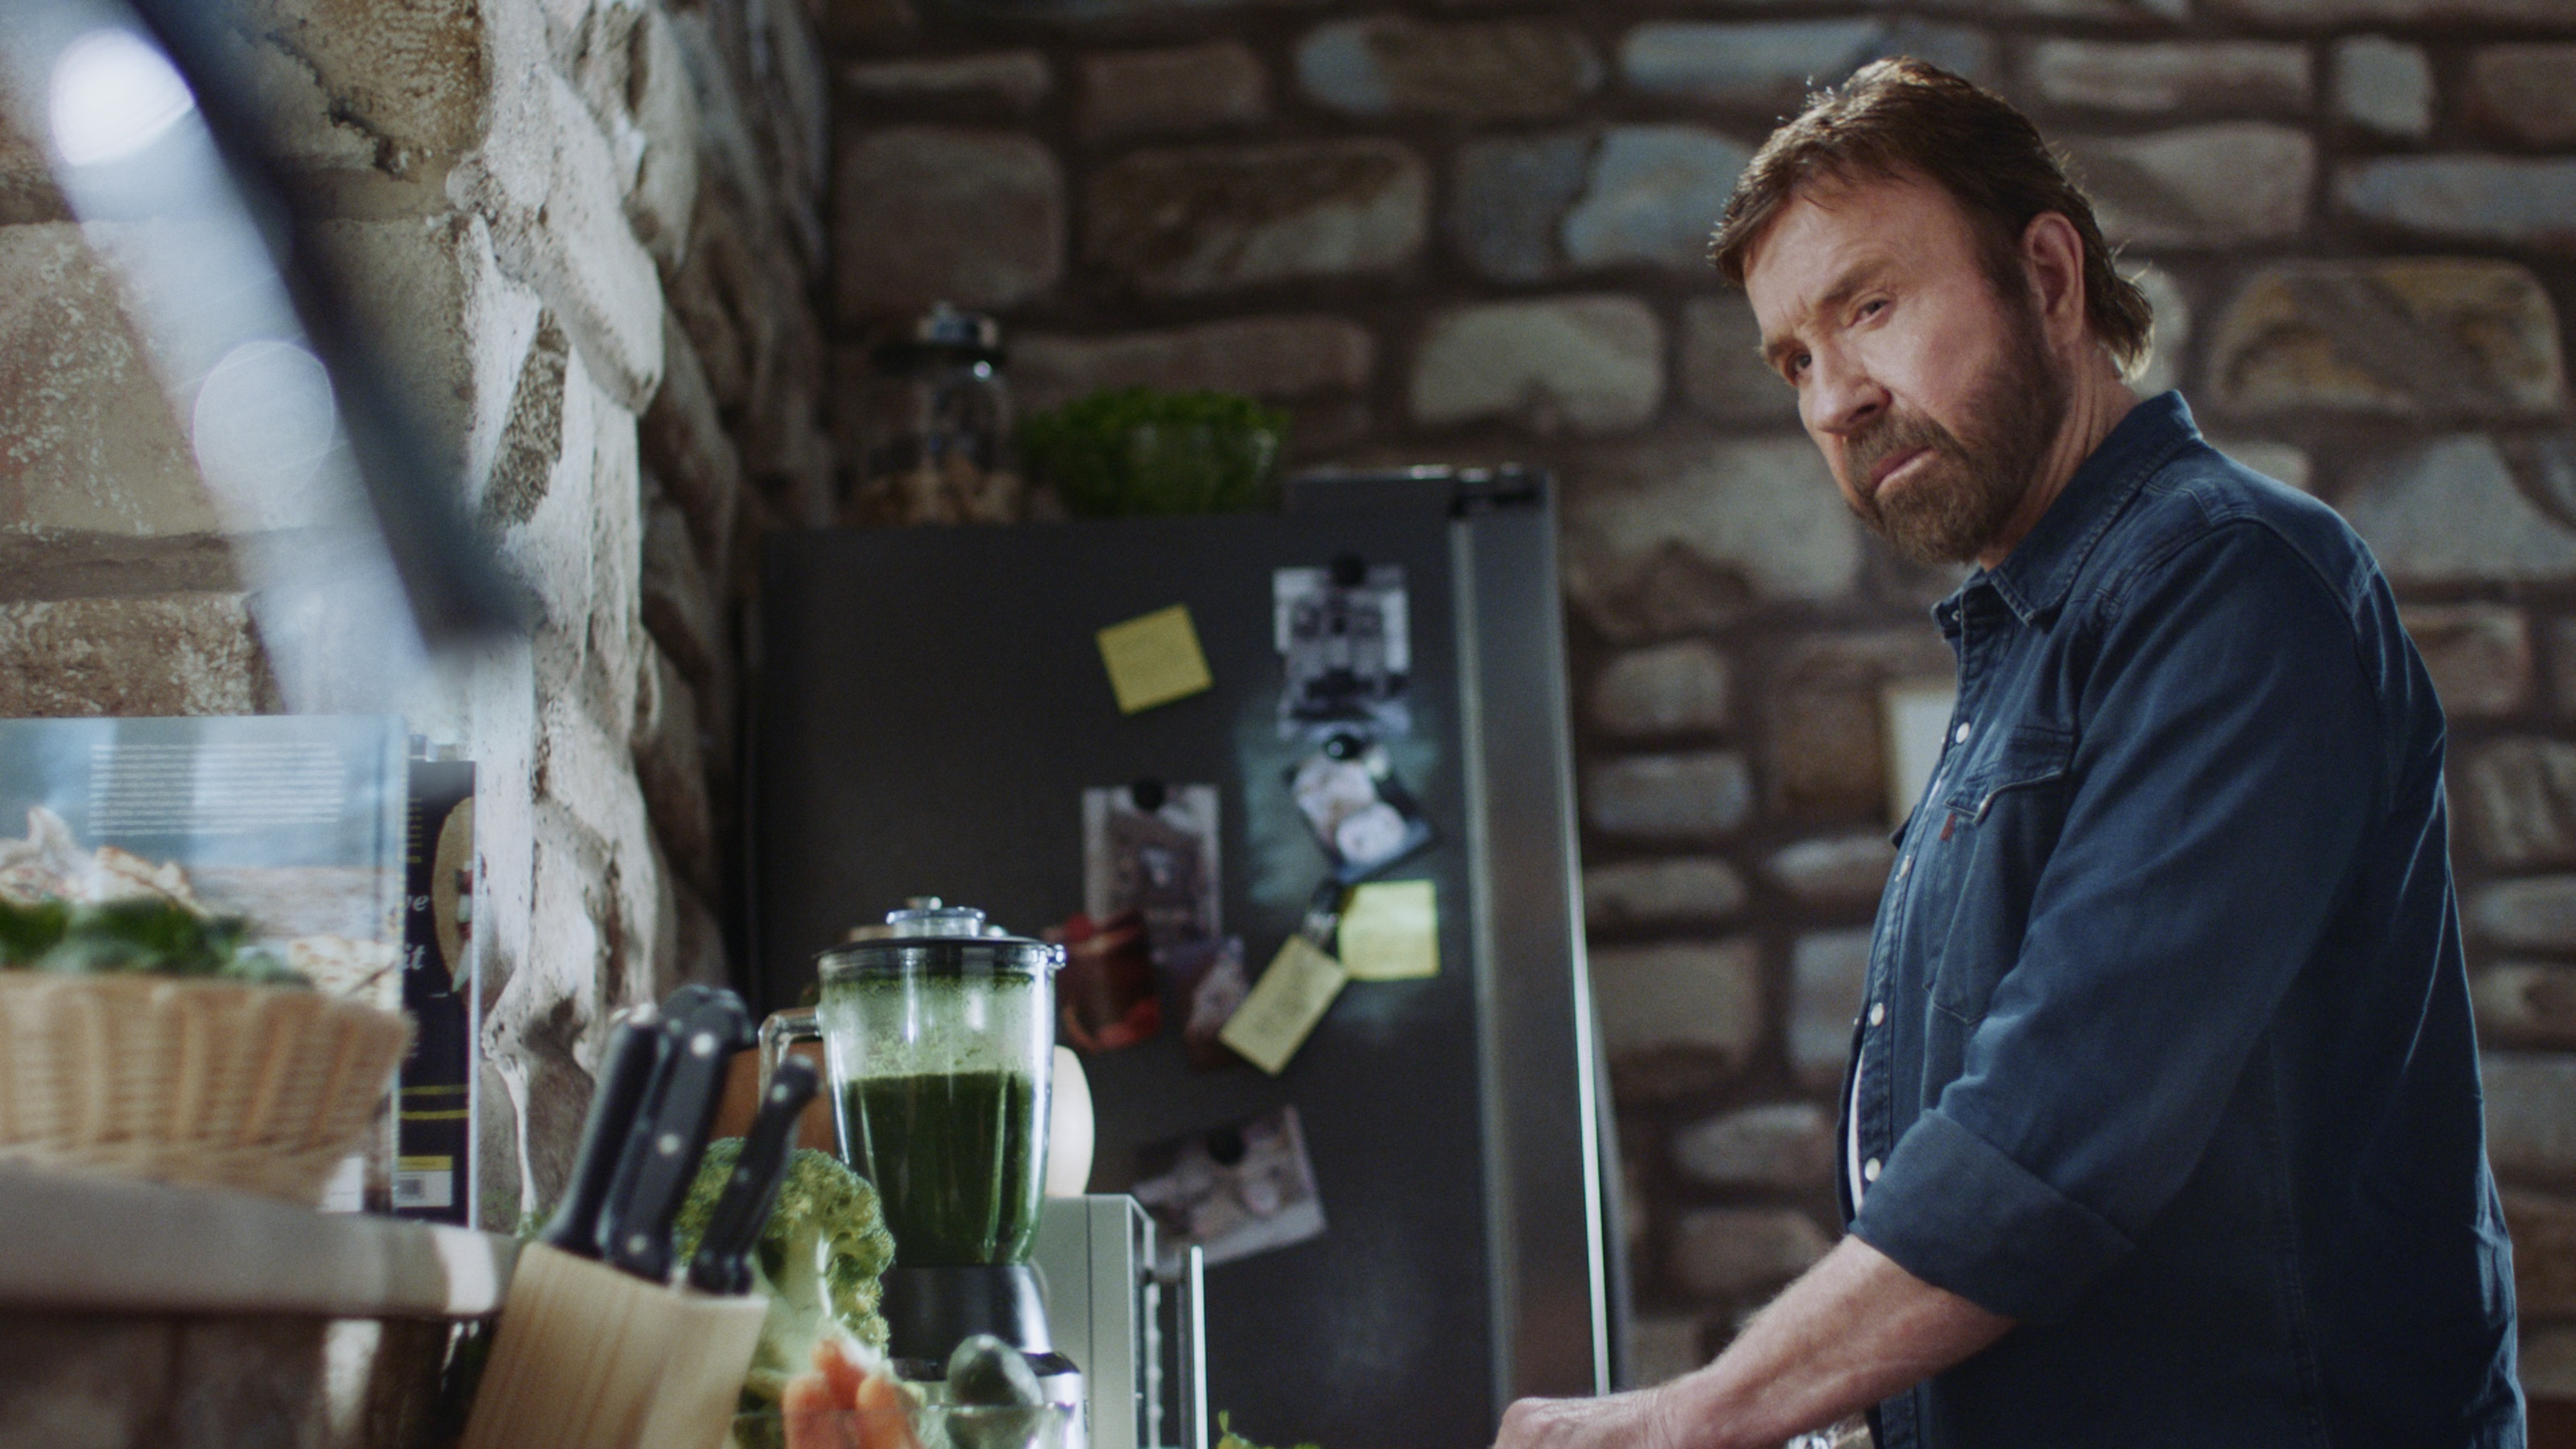 fiat professional startet werbekampagne mit chuck norris in der hauptrolle pressetexte fca. Black Bedroom Furniture Sets. Home Design Ideas